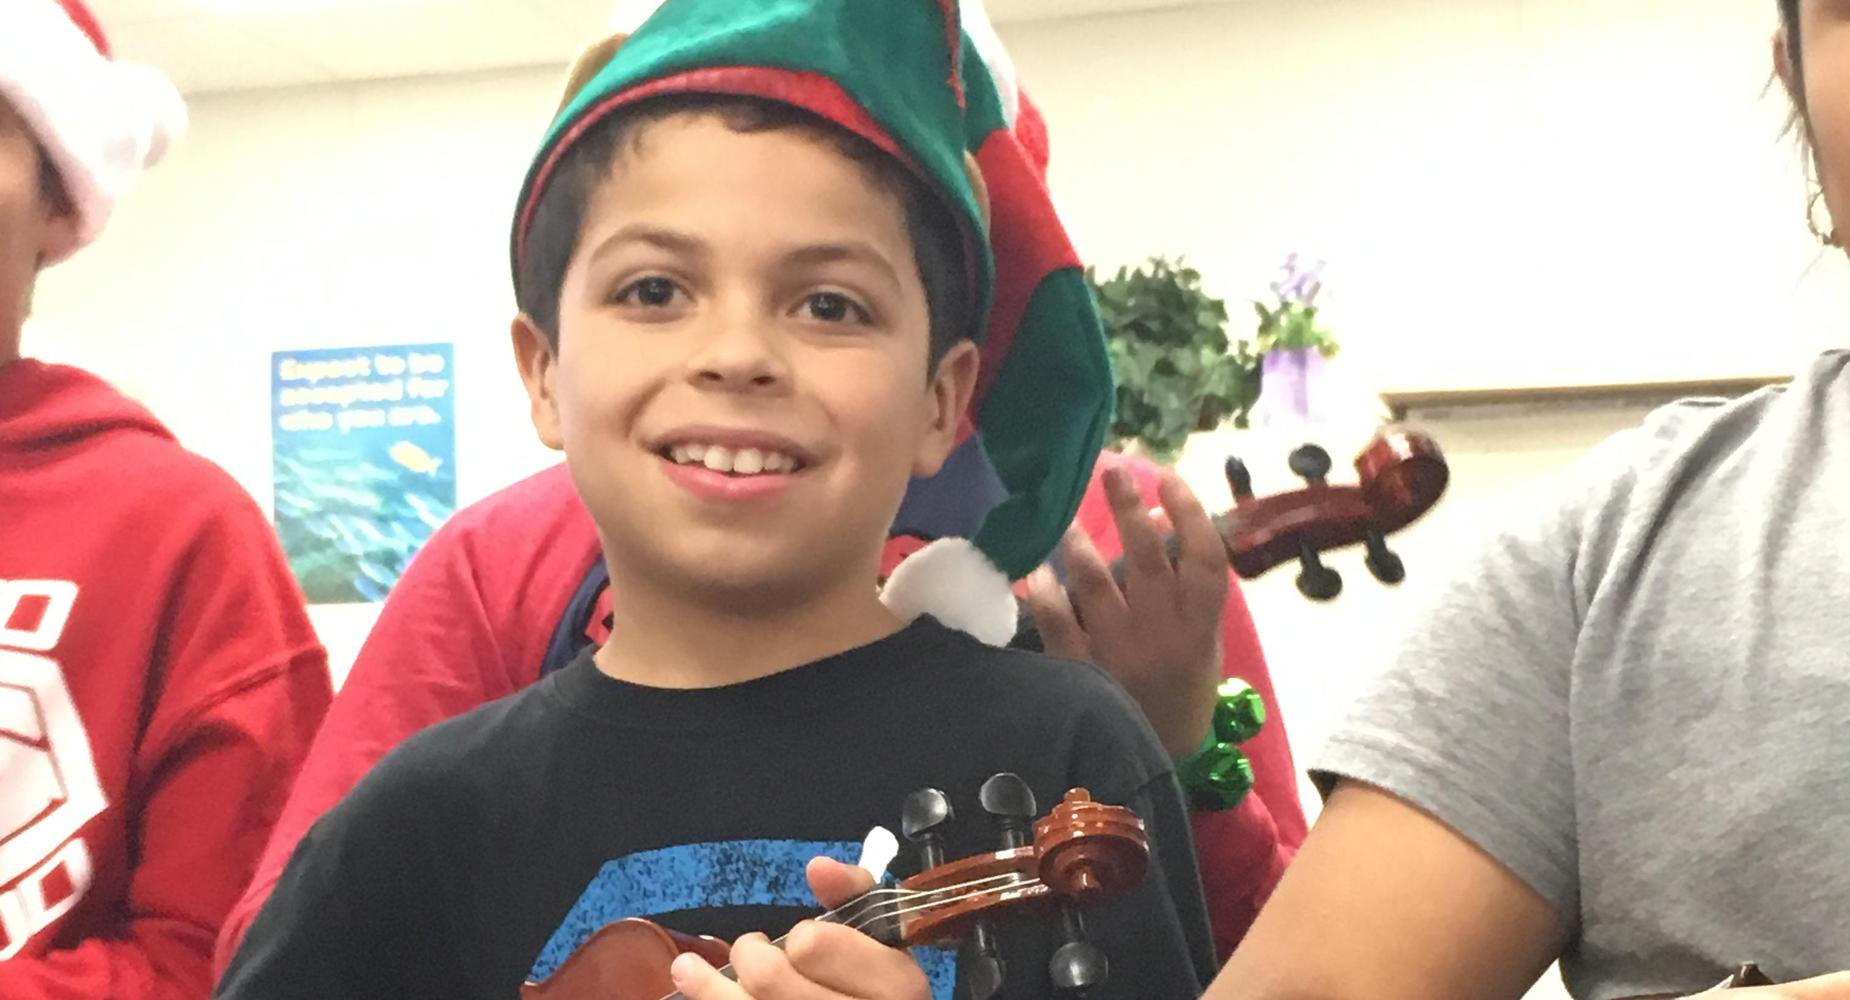 A student from Choices playing the violin for the Roosevelt staff.